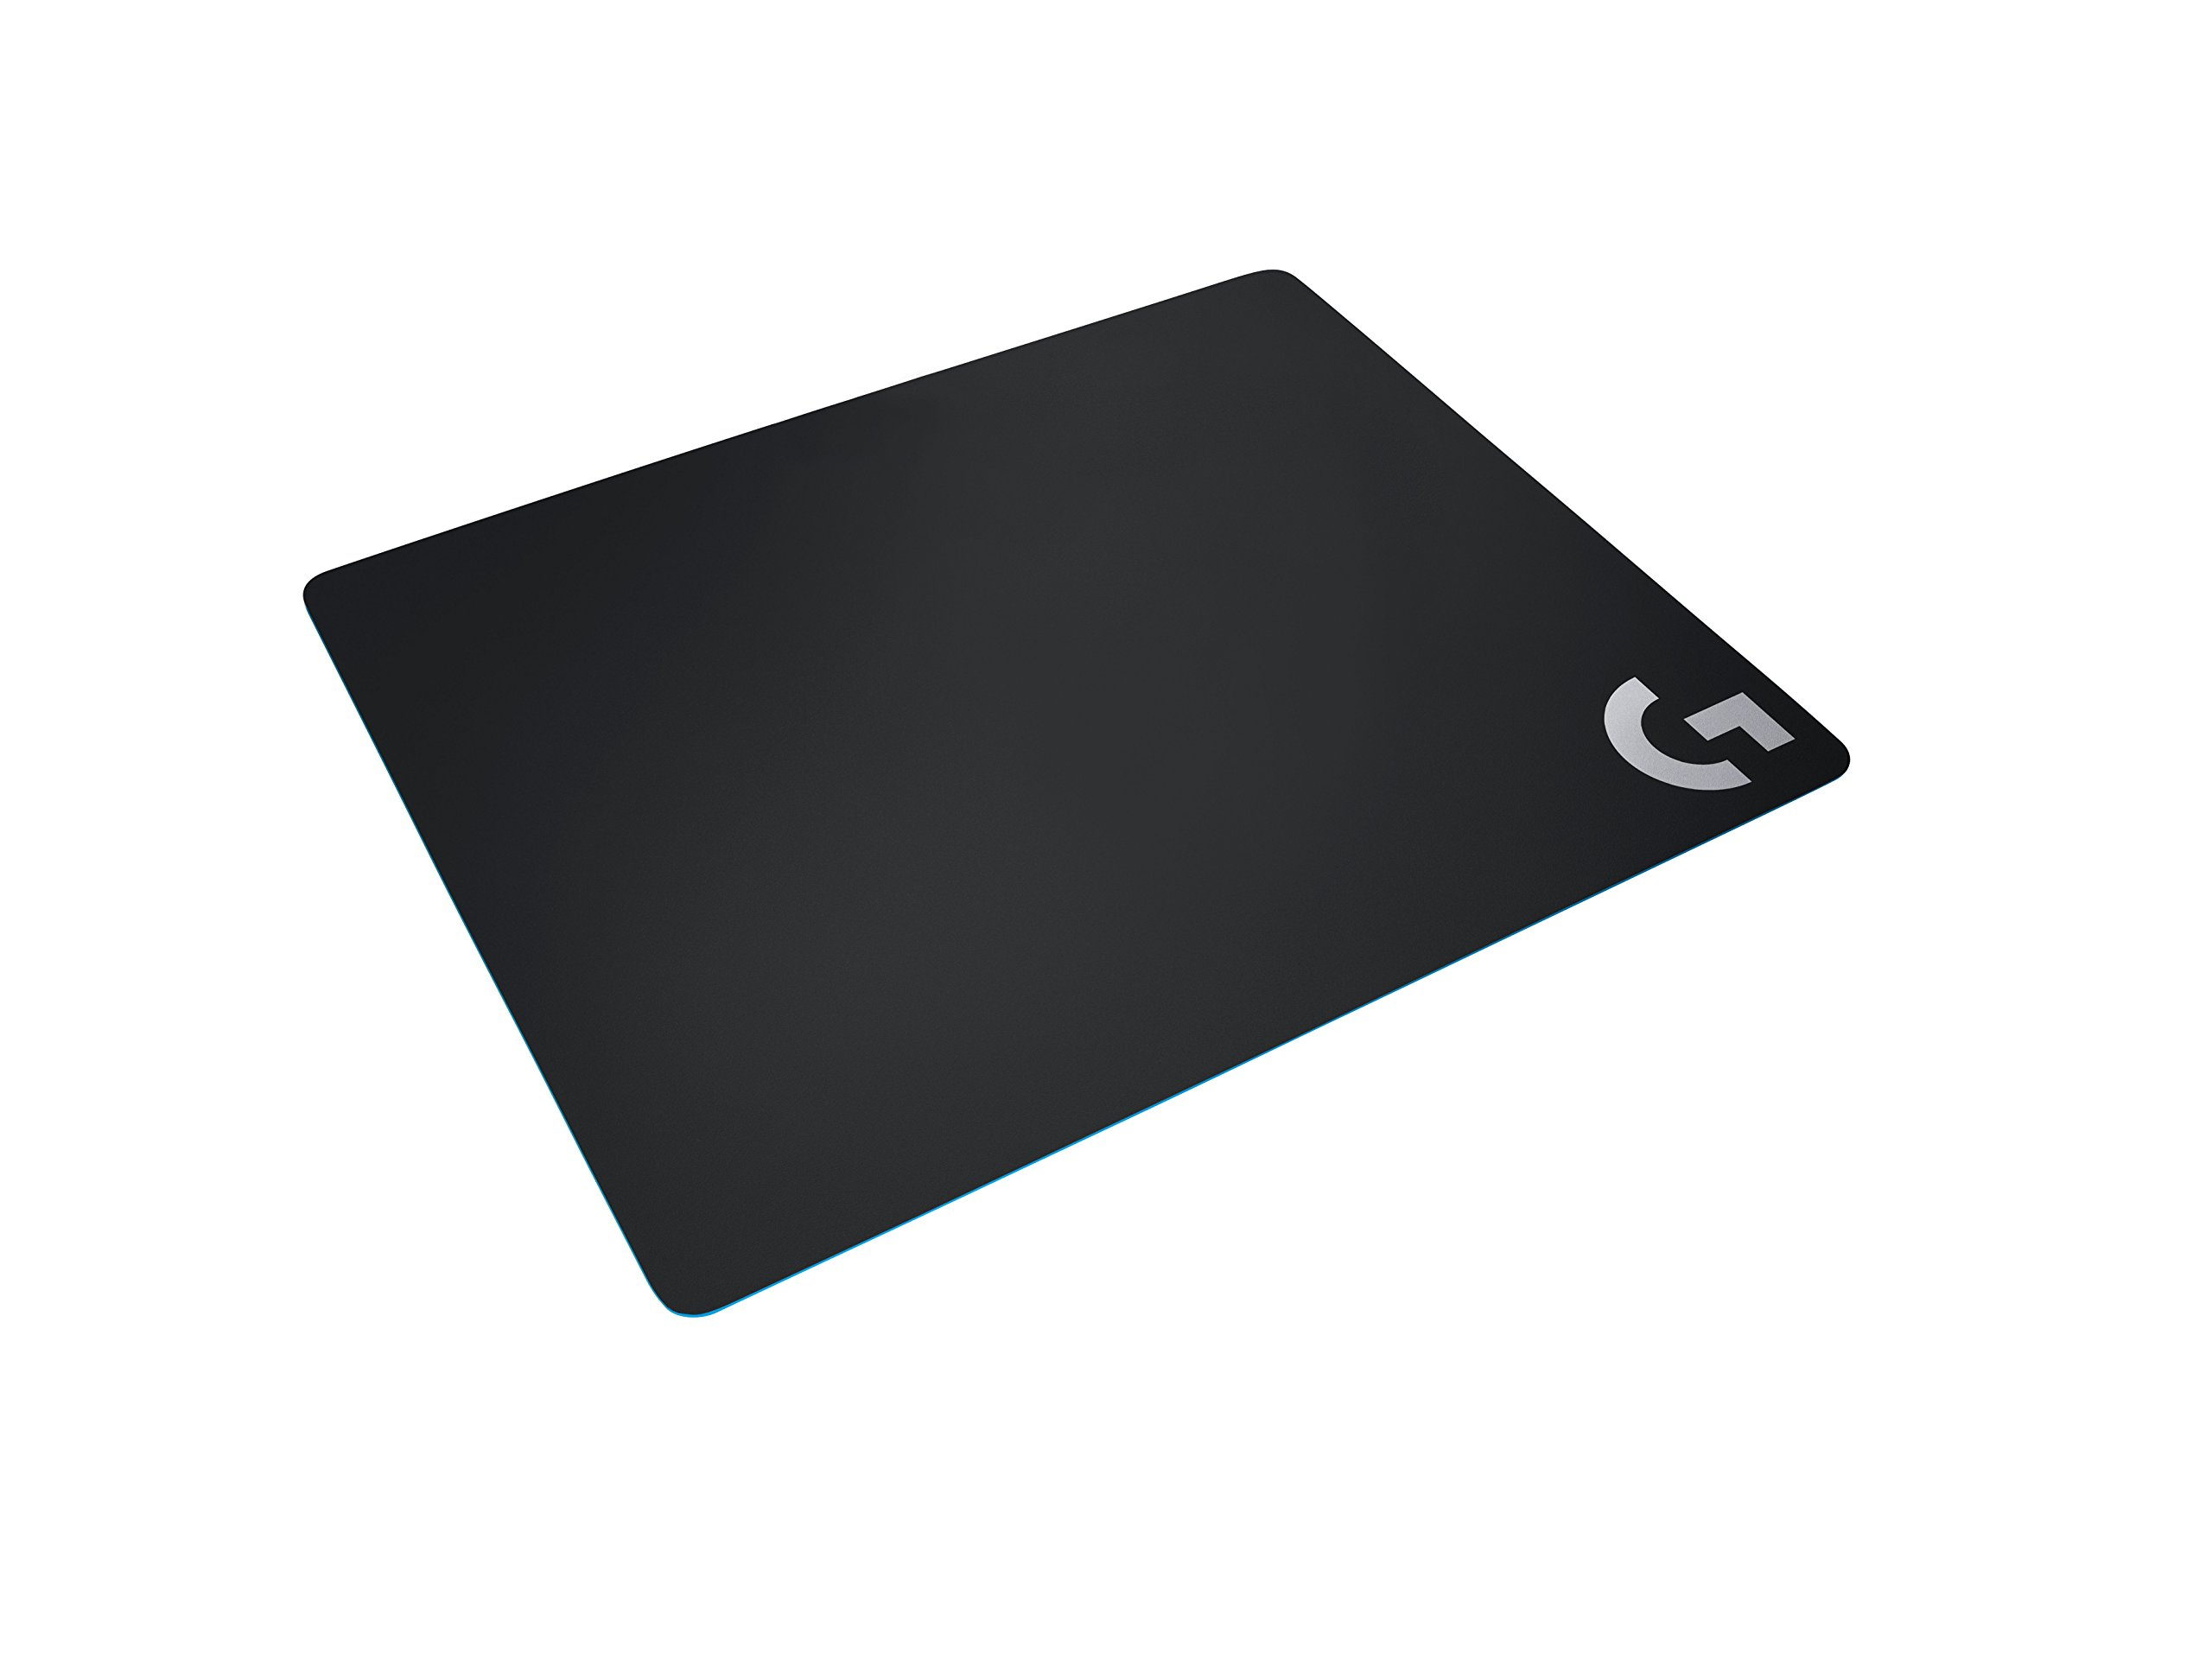 Logitech G240 Cloth Gaming Mouse Pad for Low DPI Gaming by Logitech G